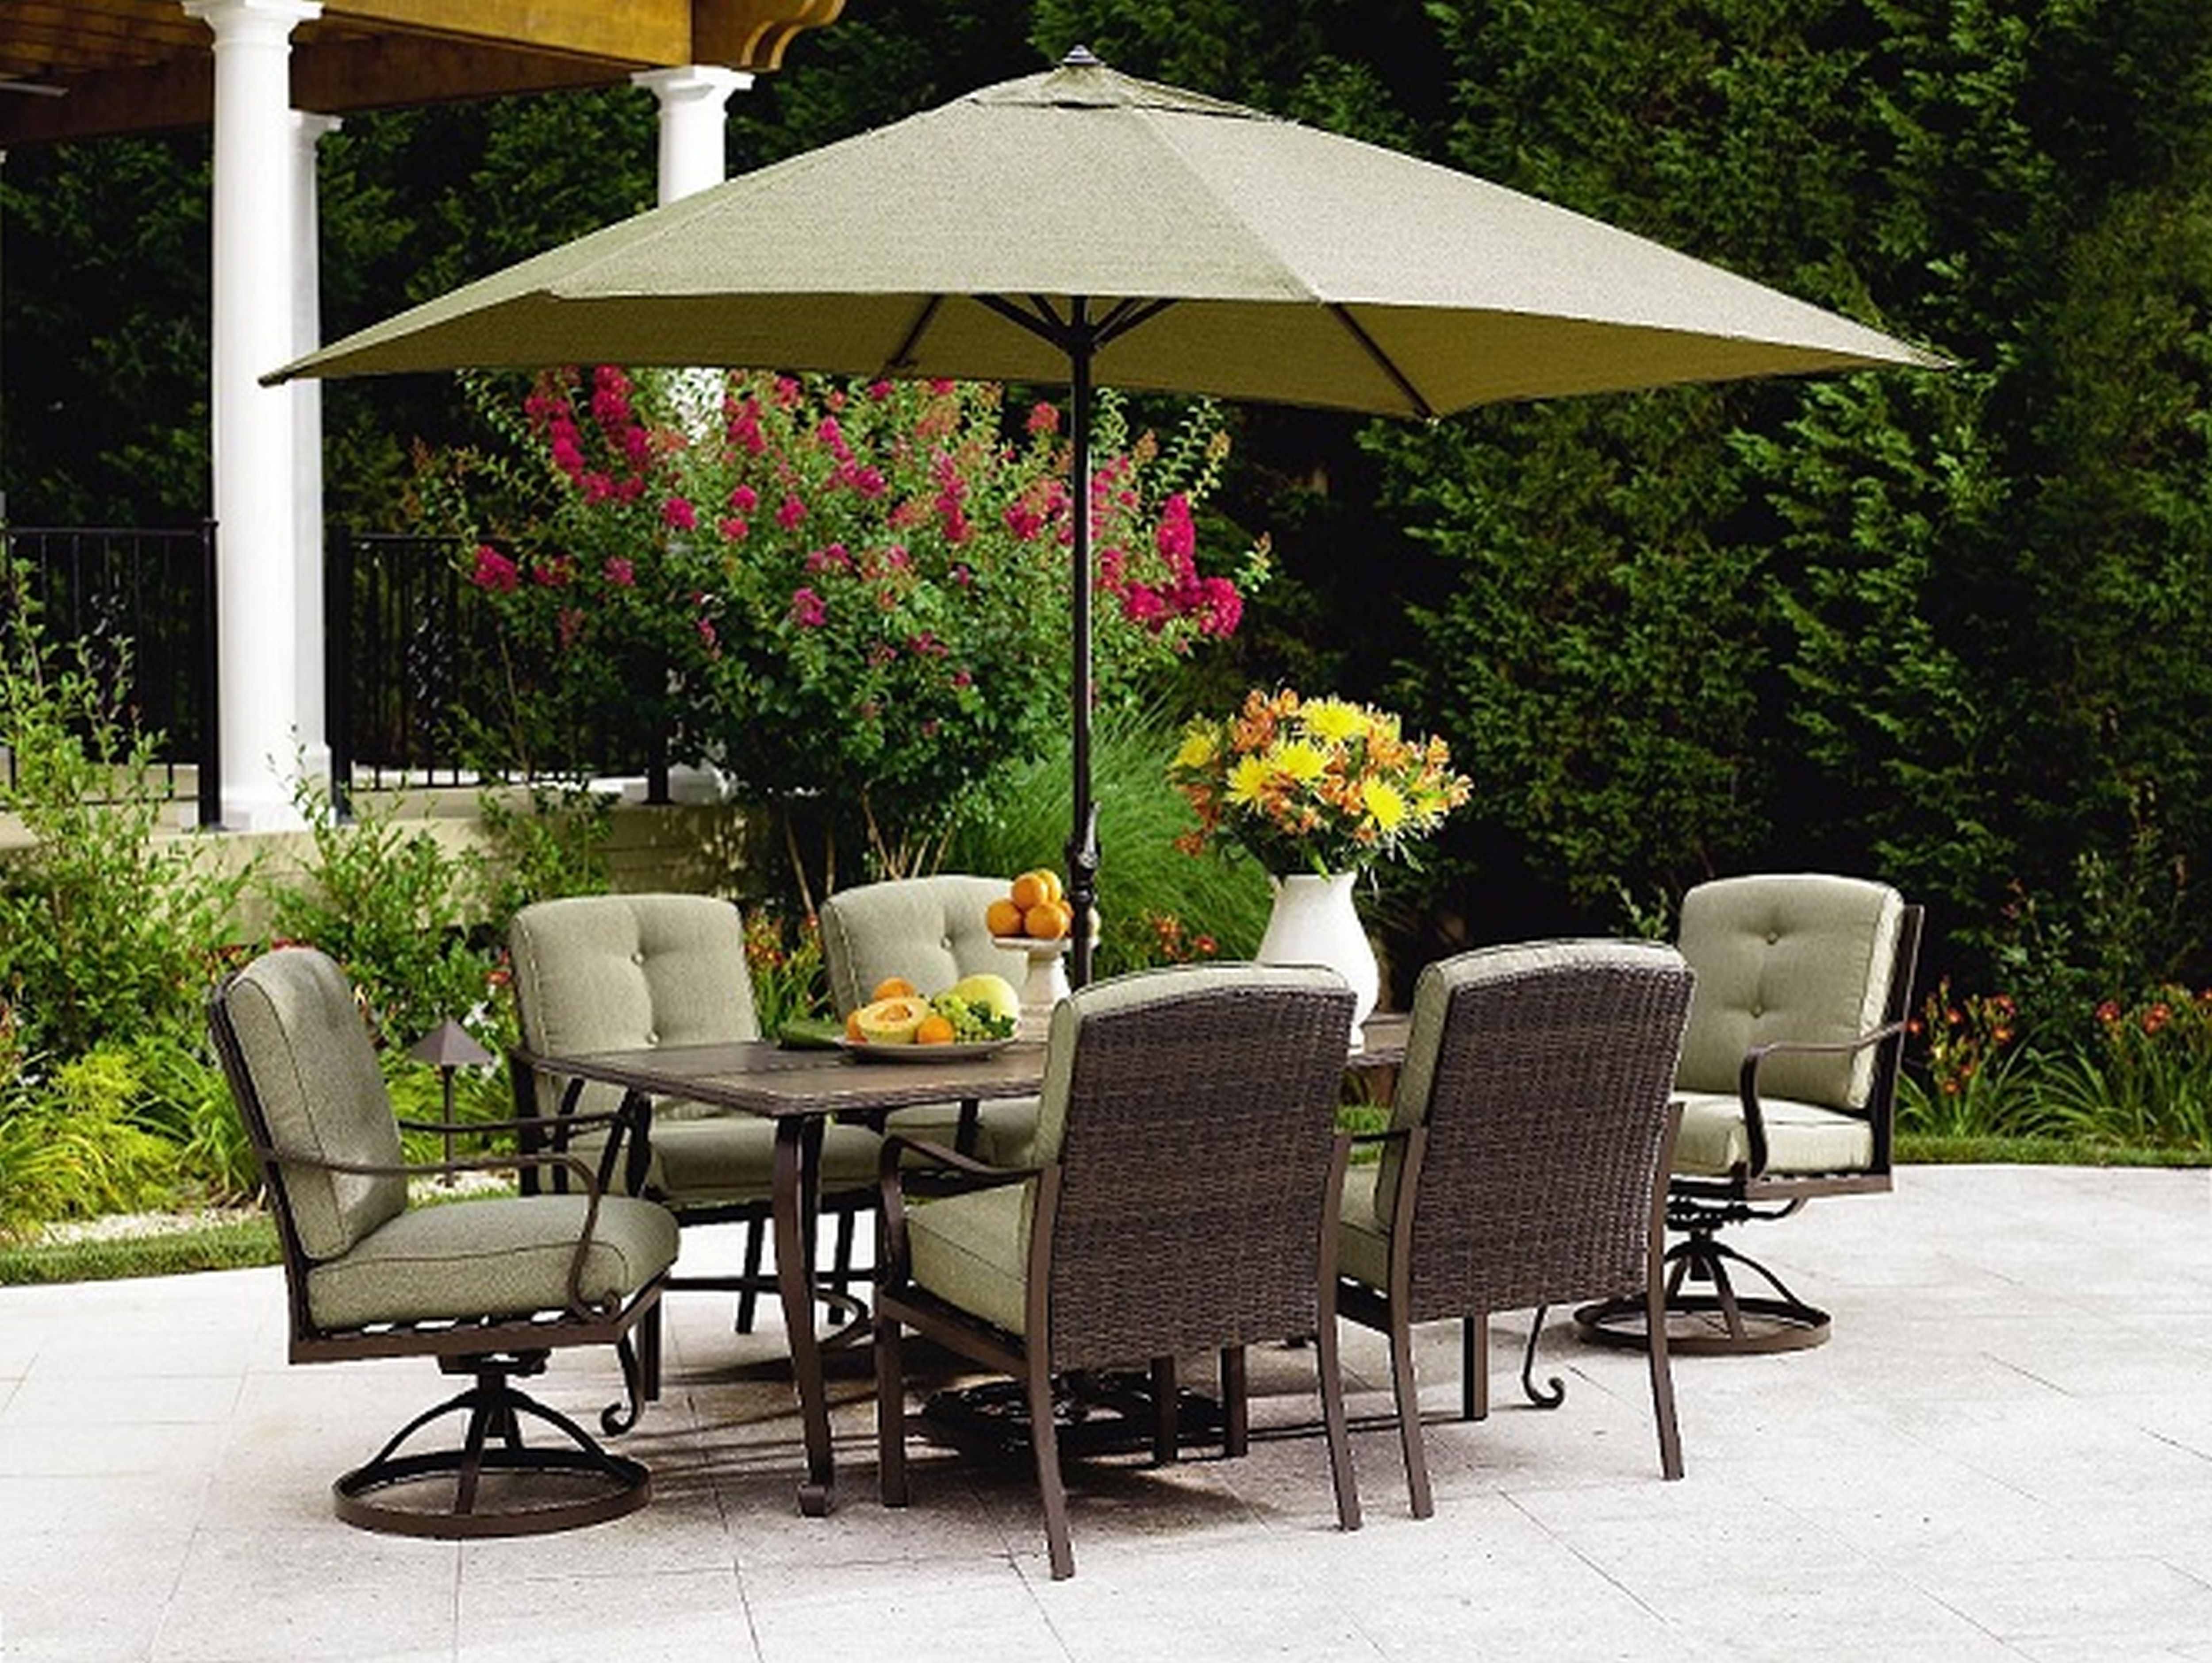 Patio Table Sets With Umbrellas For Well Known Outdoor Patio Furniture With Umbrella Home Design Ideas Of Small (View 15 of 20)